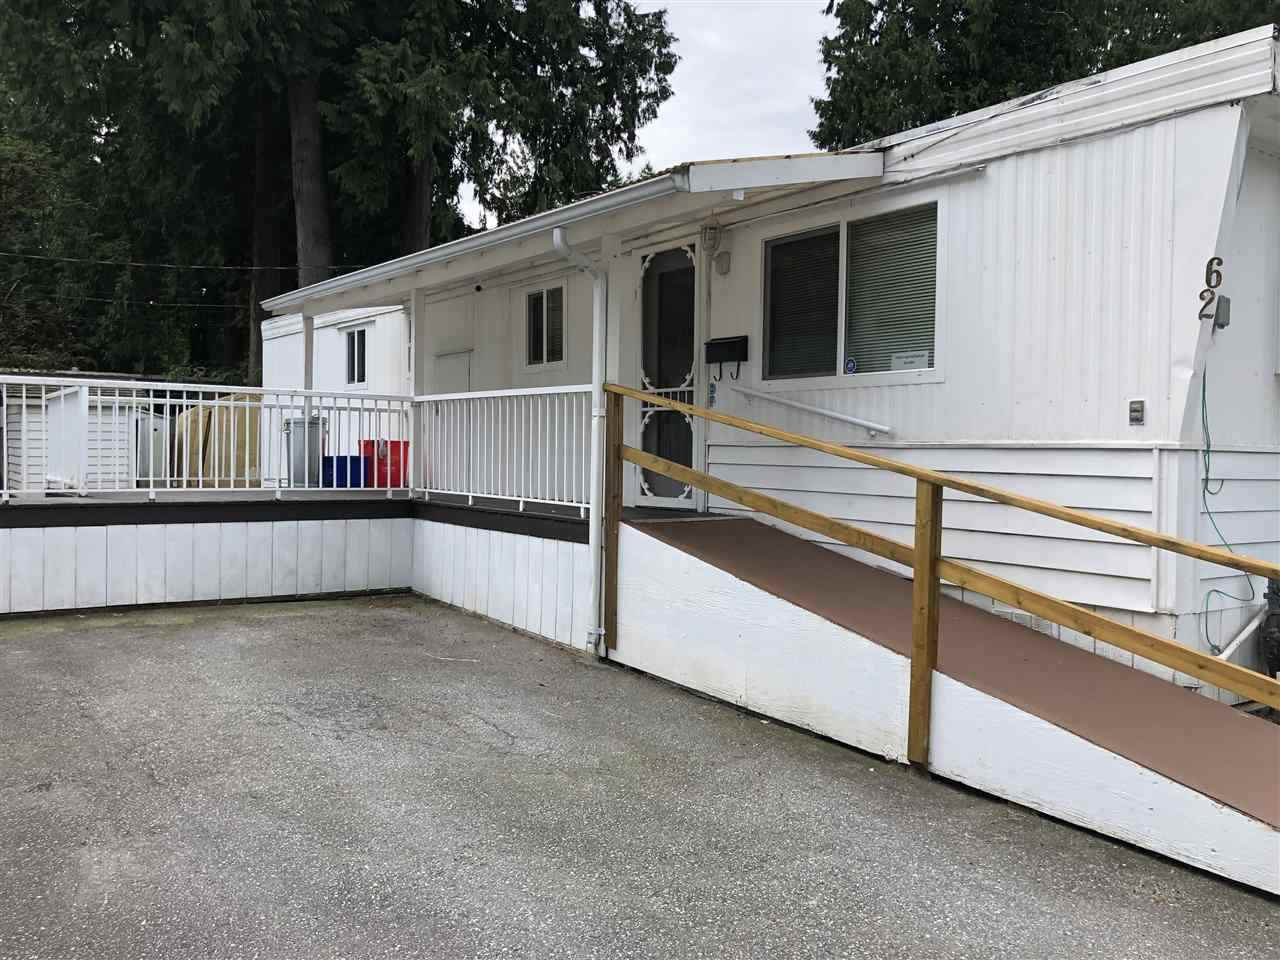 """Main Photo: 62 21163 LOUGHEED Highway in Maple Ridge: Southwest Maple Ridge Manufactured Home for sale in """"VAL MARIA"""" : MLS®# R2504195"""